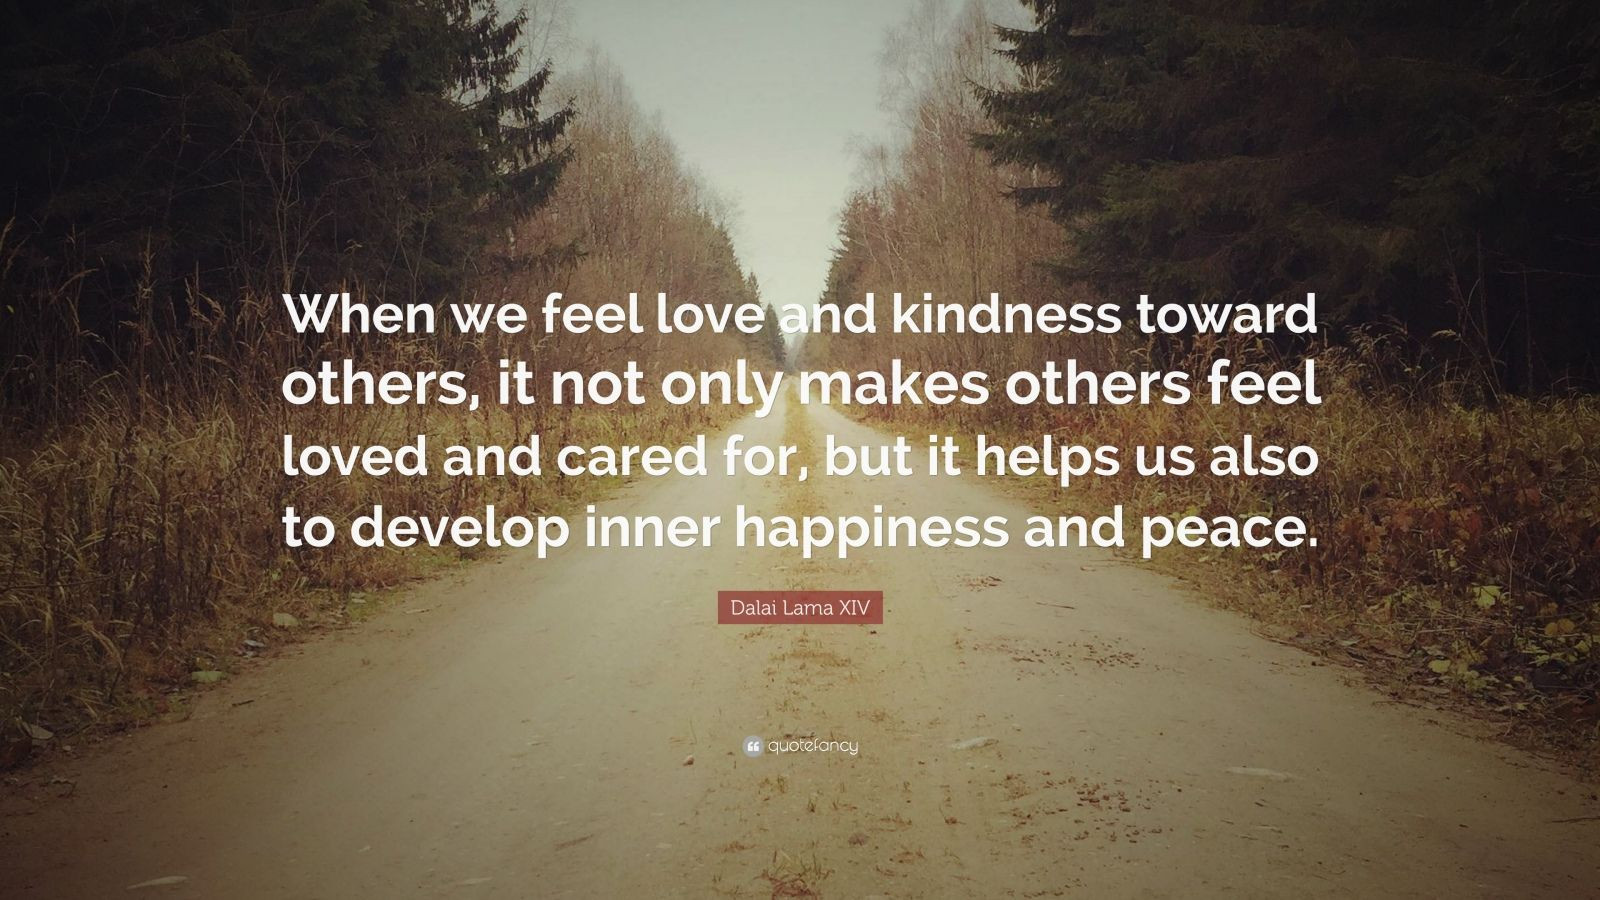 "Kindness Quotes Dalai Lama  Dalai Lama XIV Quote ""When we feel love and kindness"